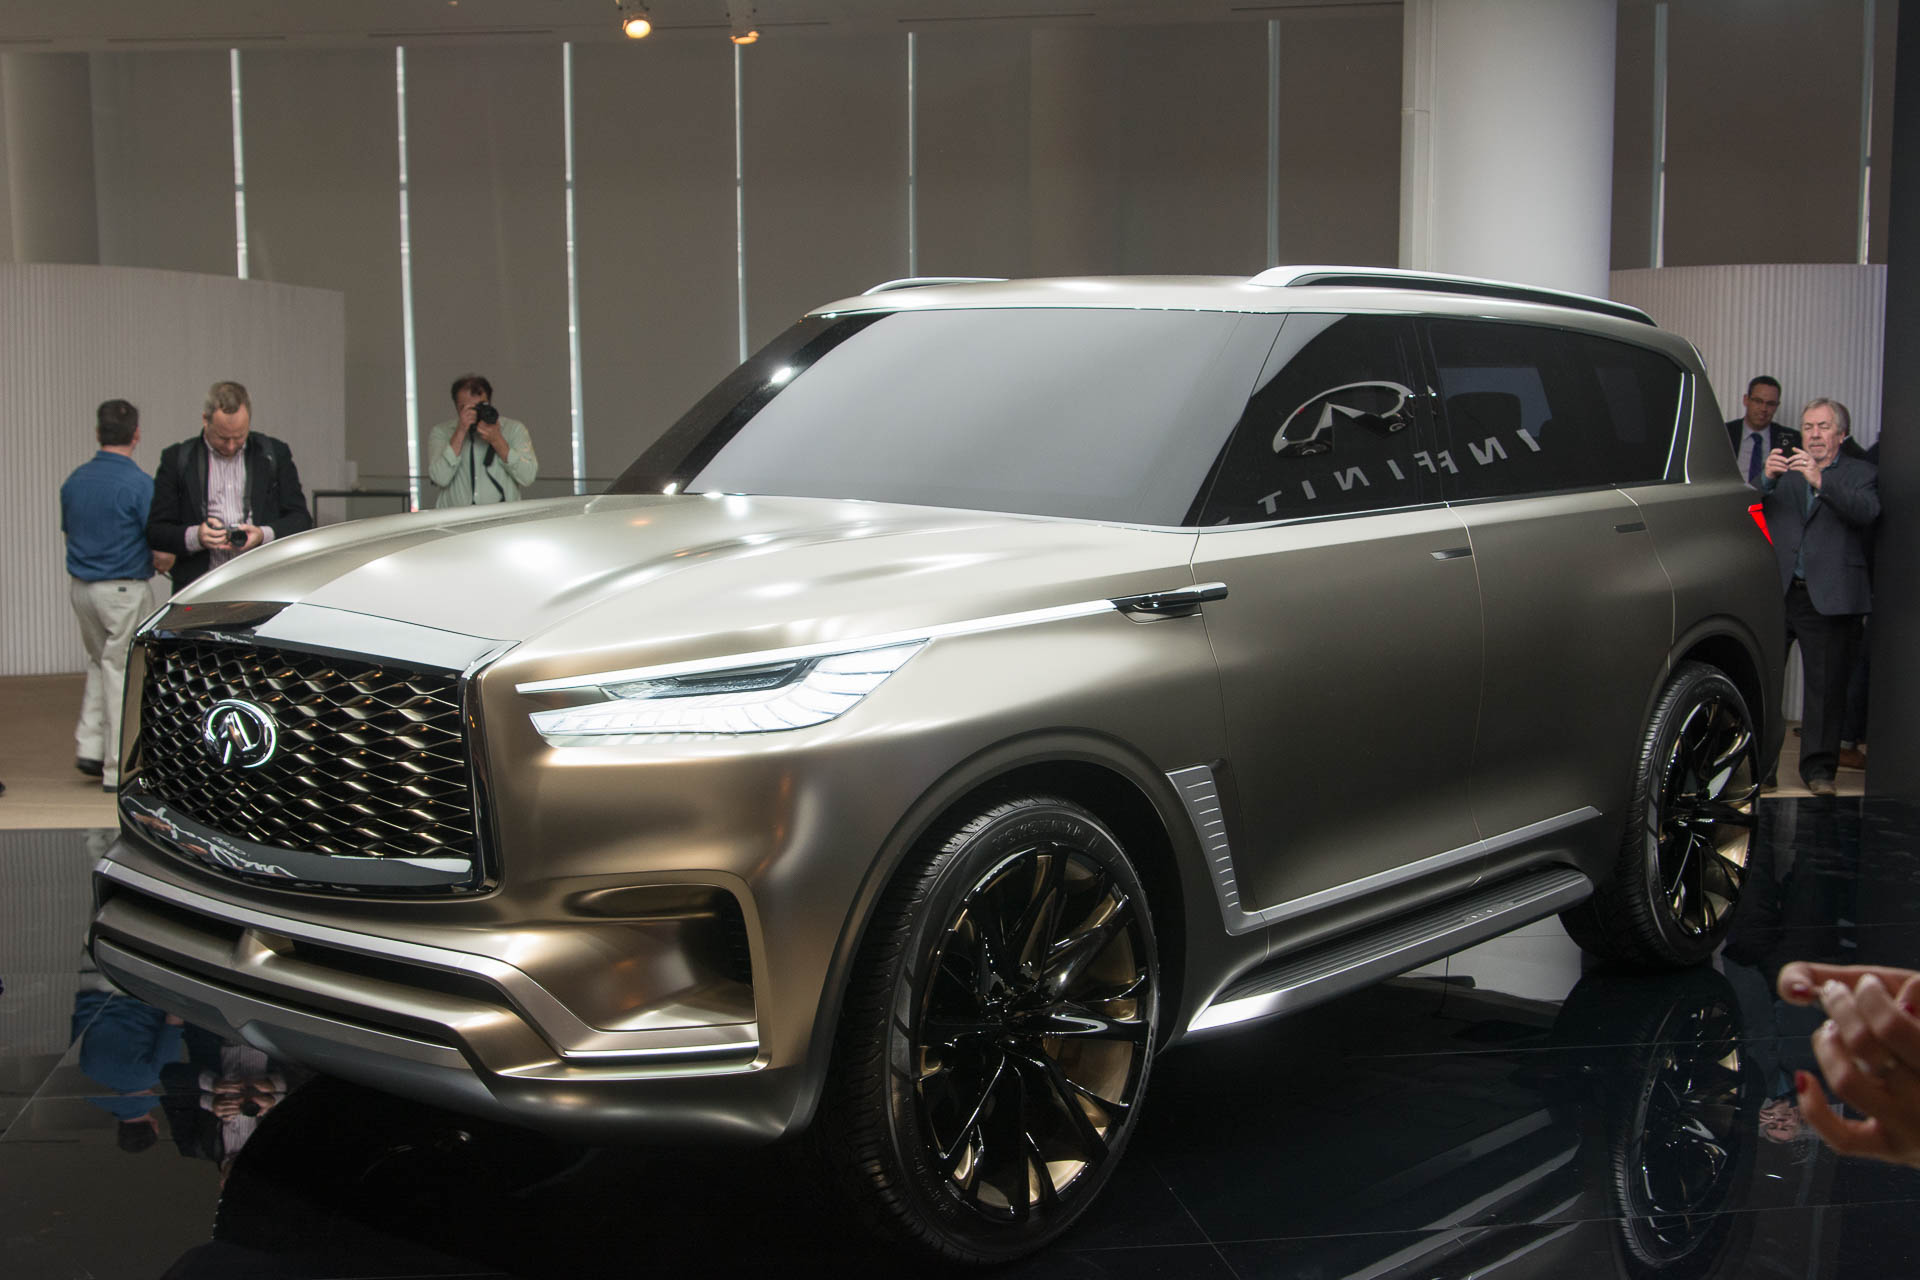 2020 Infiniti Qx80 Suv Price and Release date